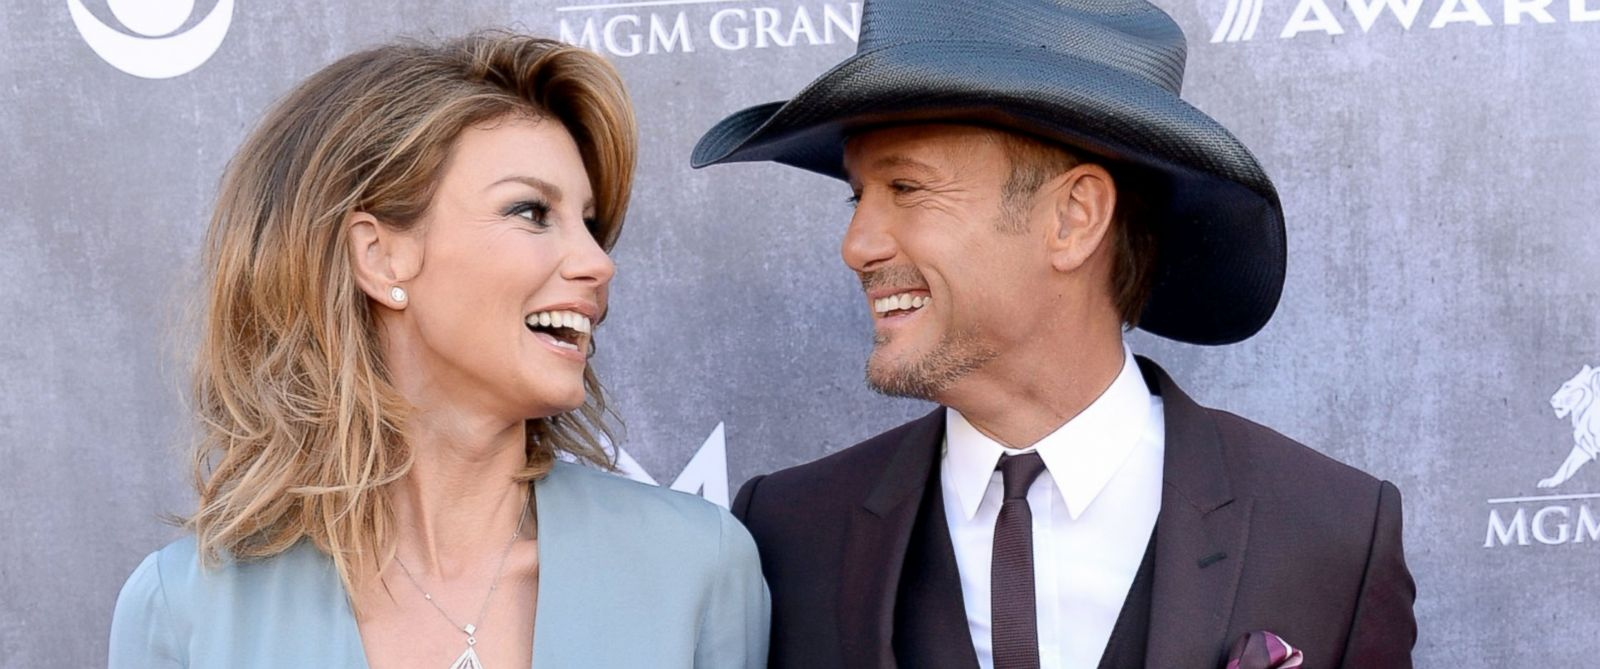 PHOTO: Faith Hill and Tim McGraw attend the 49th Annual Academy of Country Music Awards at the MGM Grand Garden Arena, April 6, 2014, in Las Vegas.